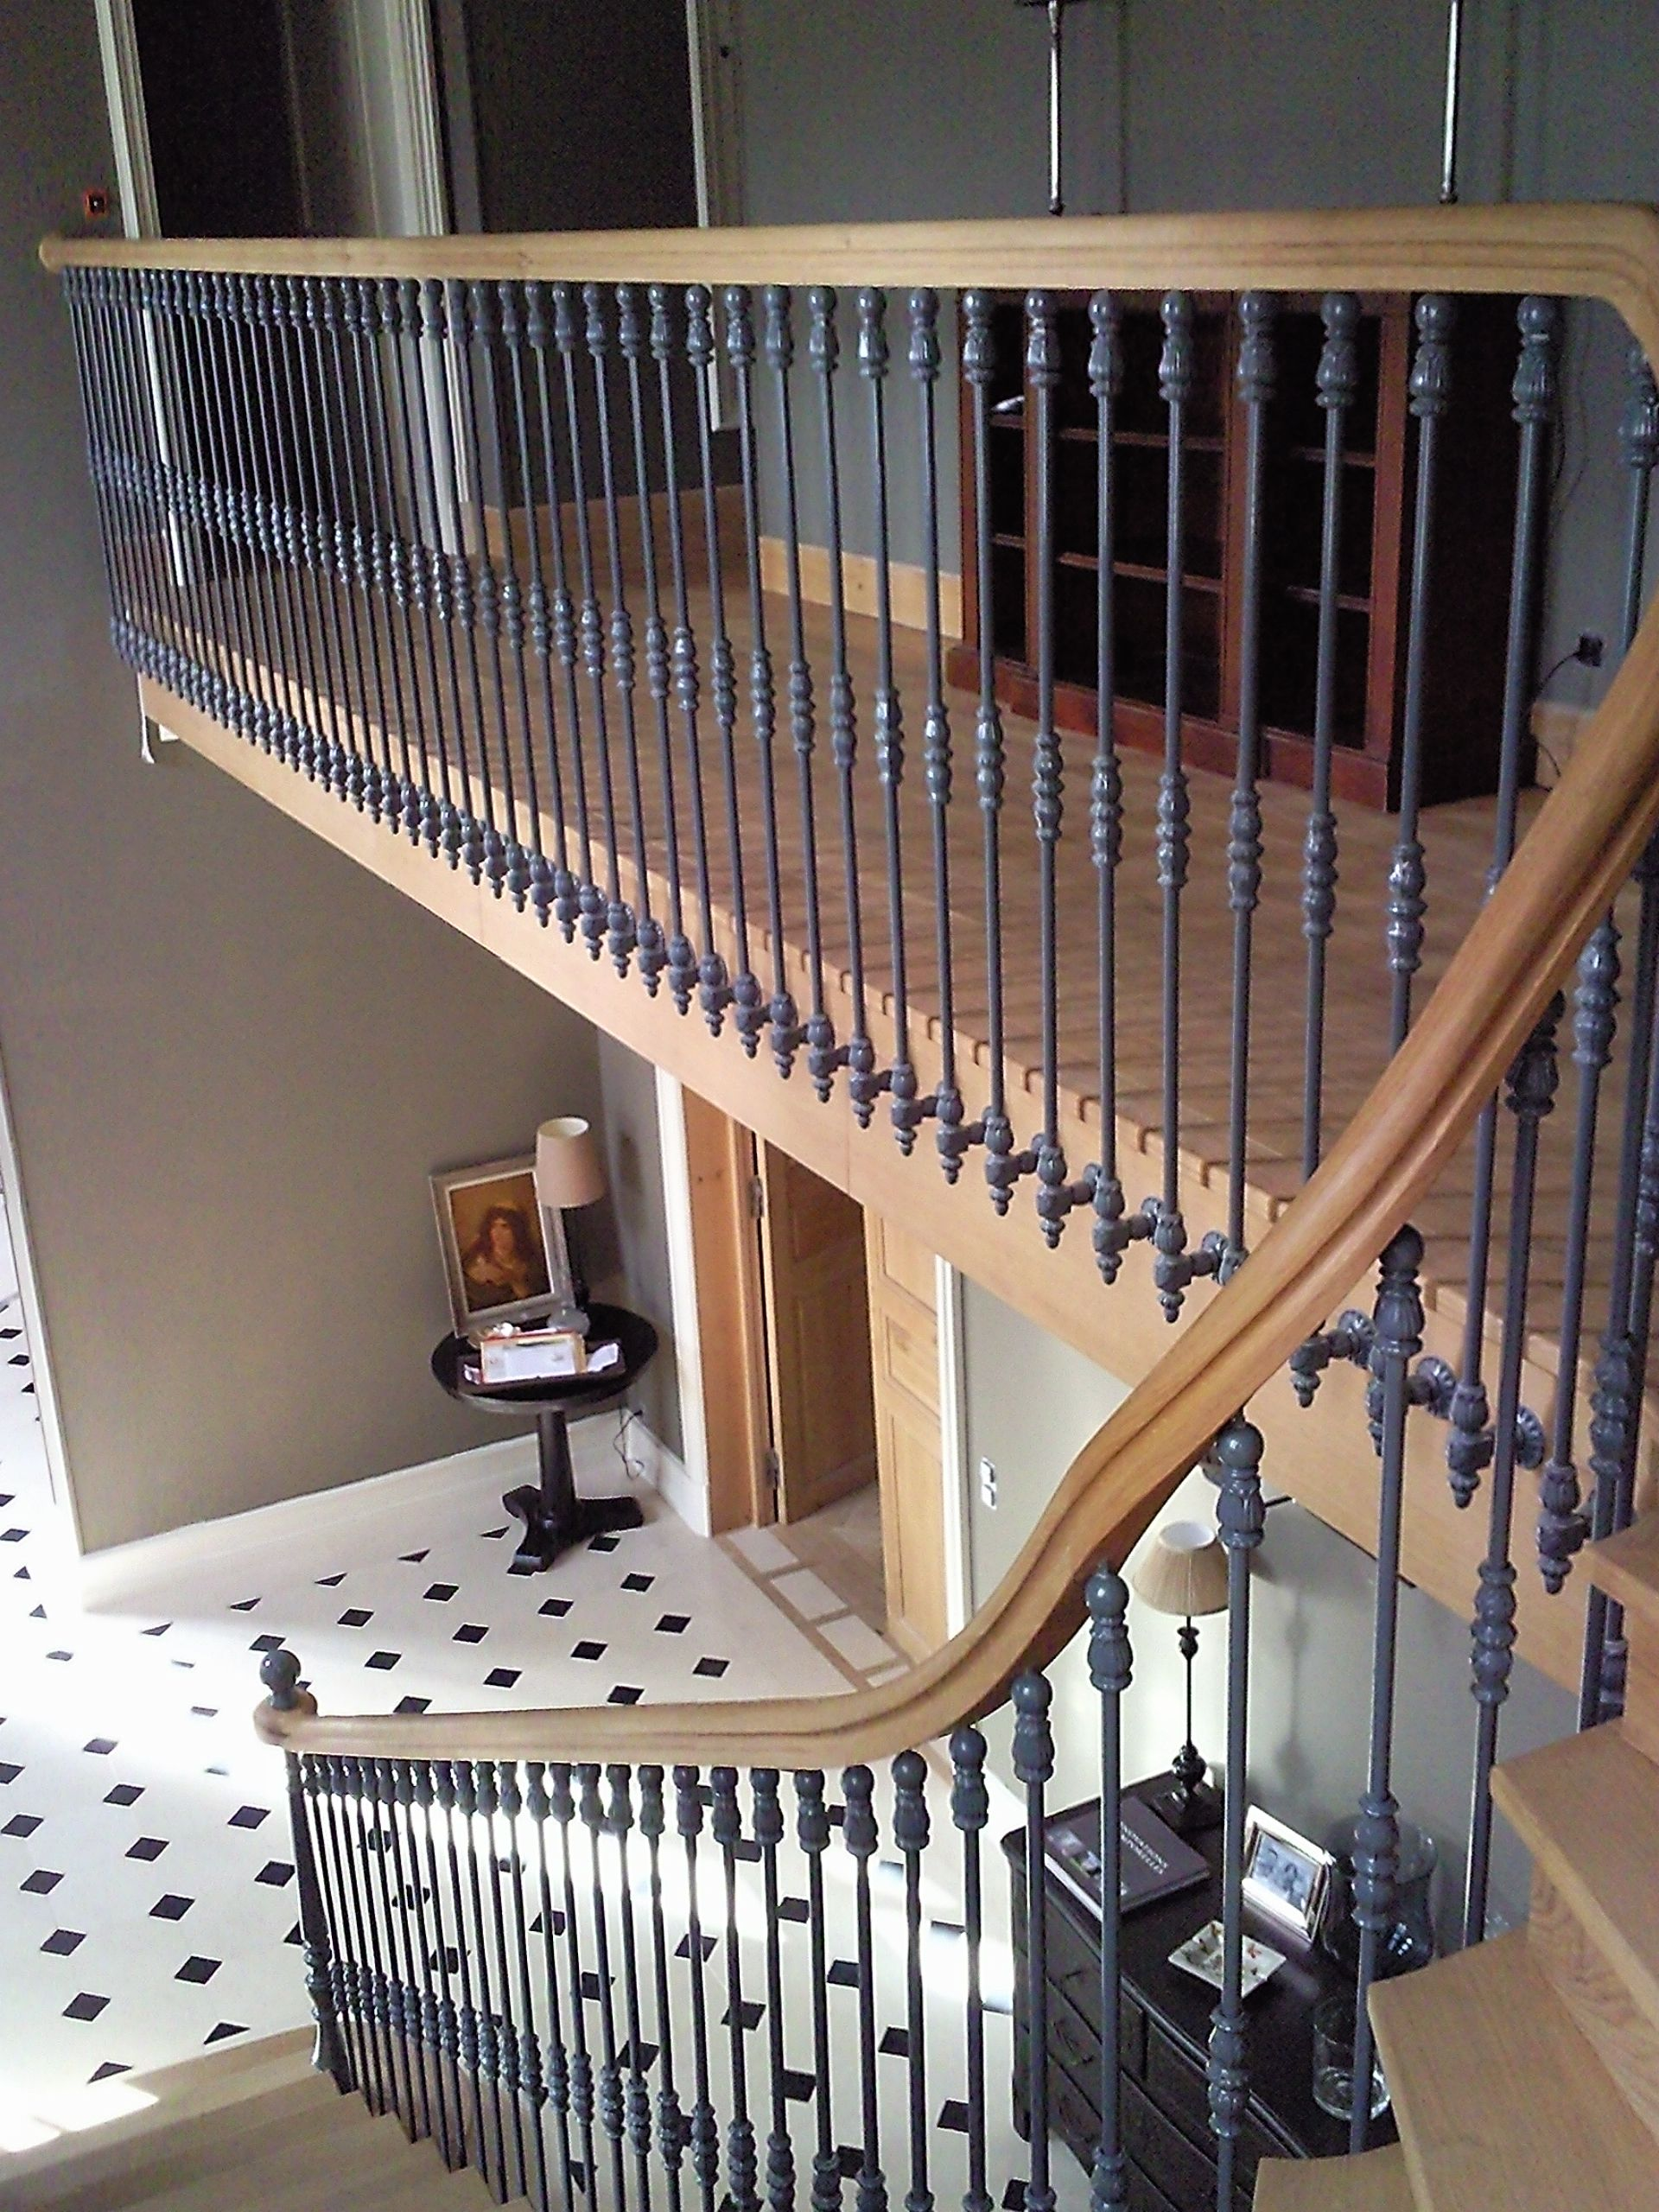 Fabricant D Escalier Bois staircase #stairway #stairs #escalier #interiordesign